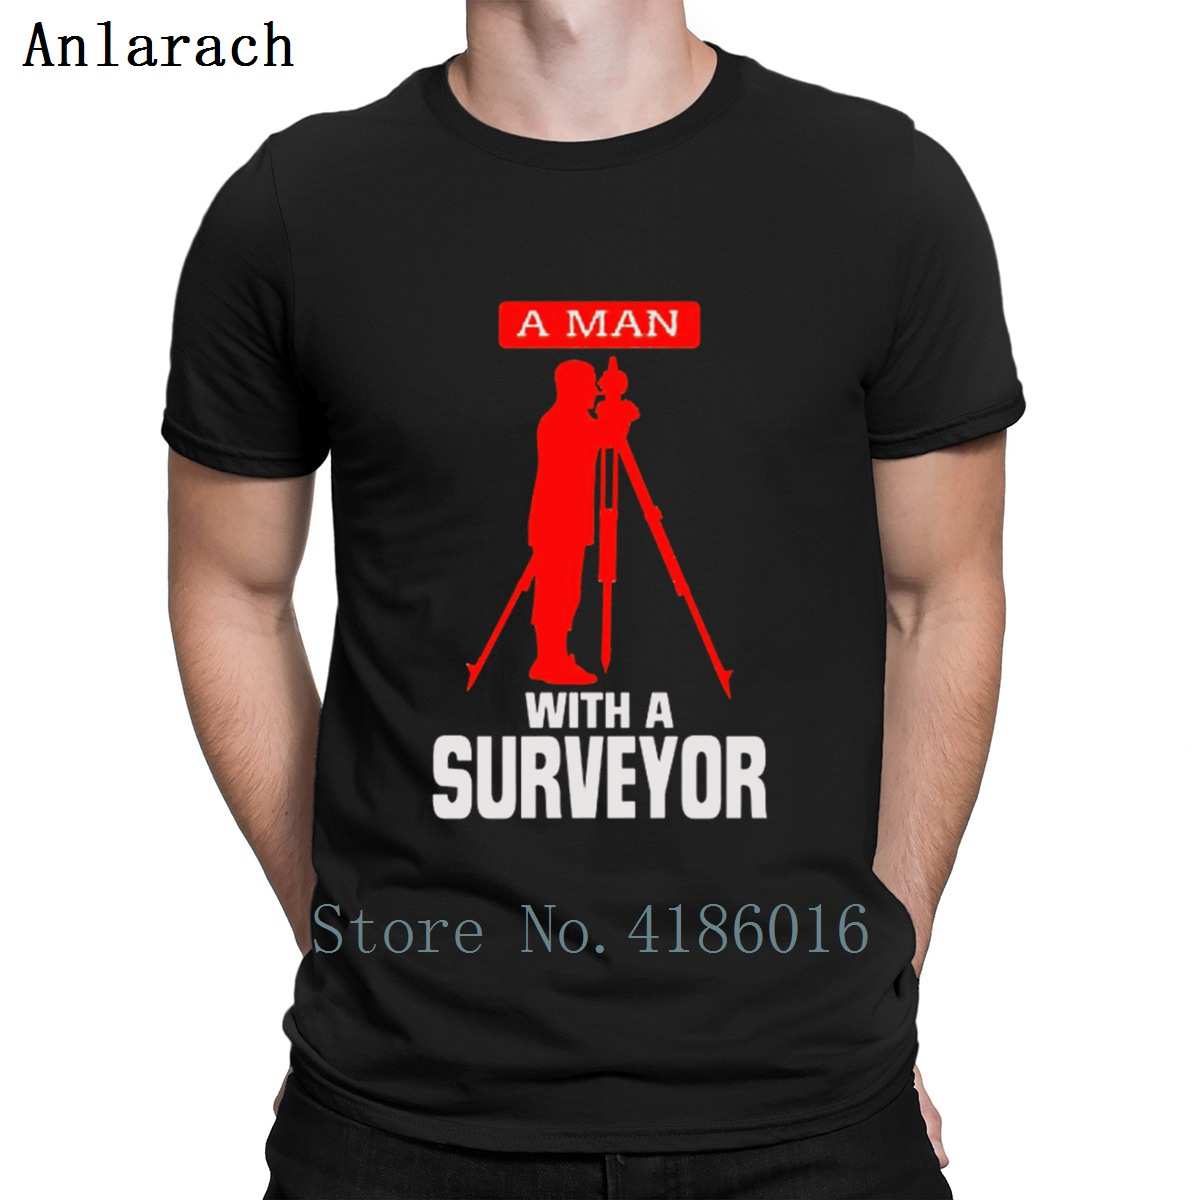 A Man With A Surveyor T Shirt Newest Fit Humorous Letter Printed Tshirt S-3xl Printing HipHop Tops Summer